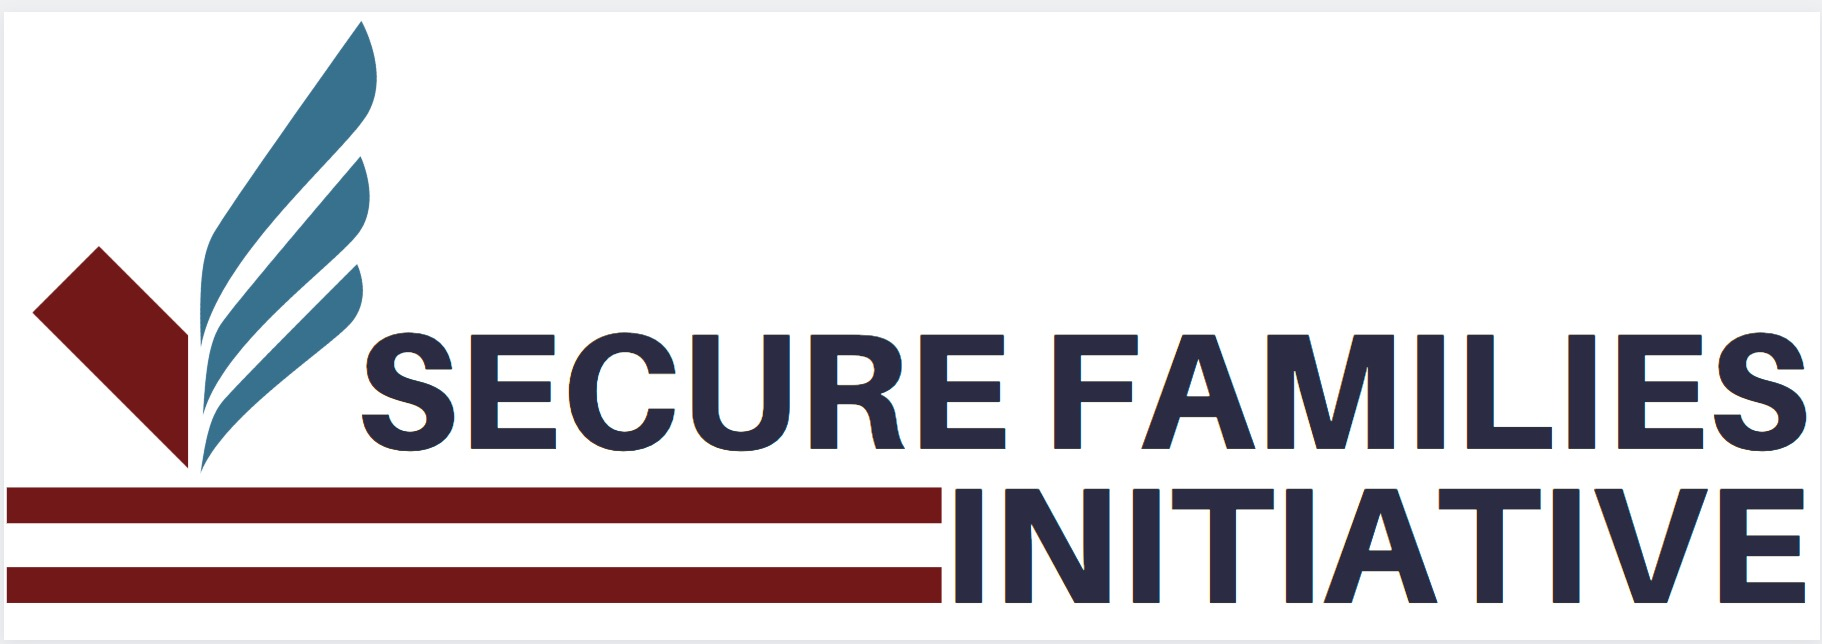 Secure Families Initiative